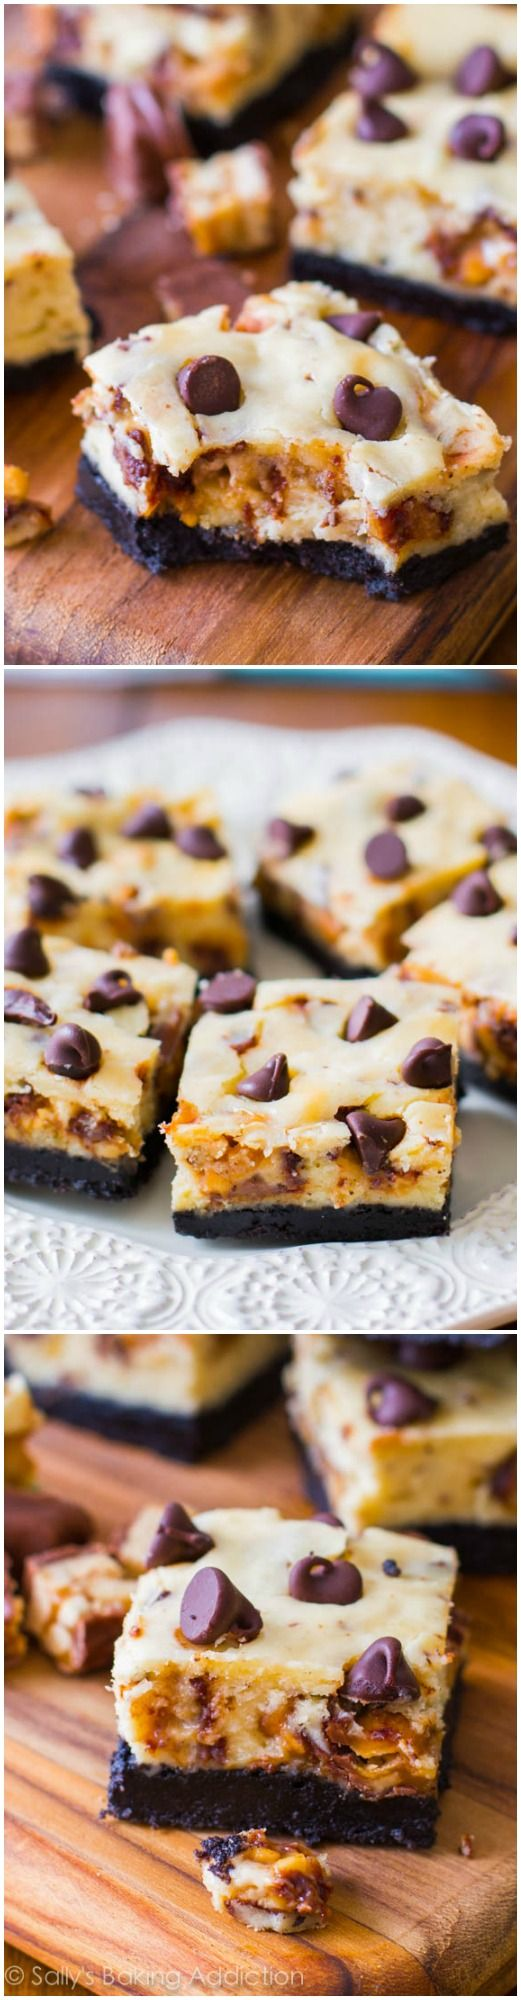 8 Ingredient Snickers Cheesecake Bars - no one can resist these!